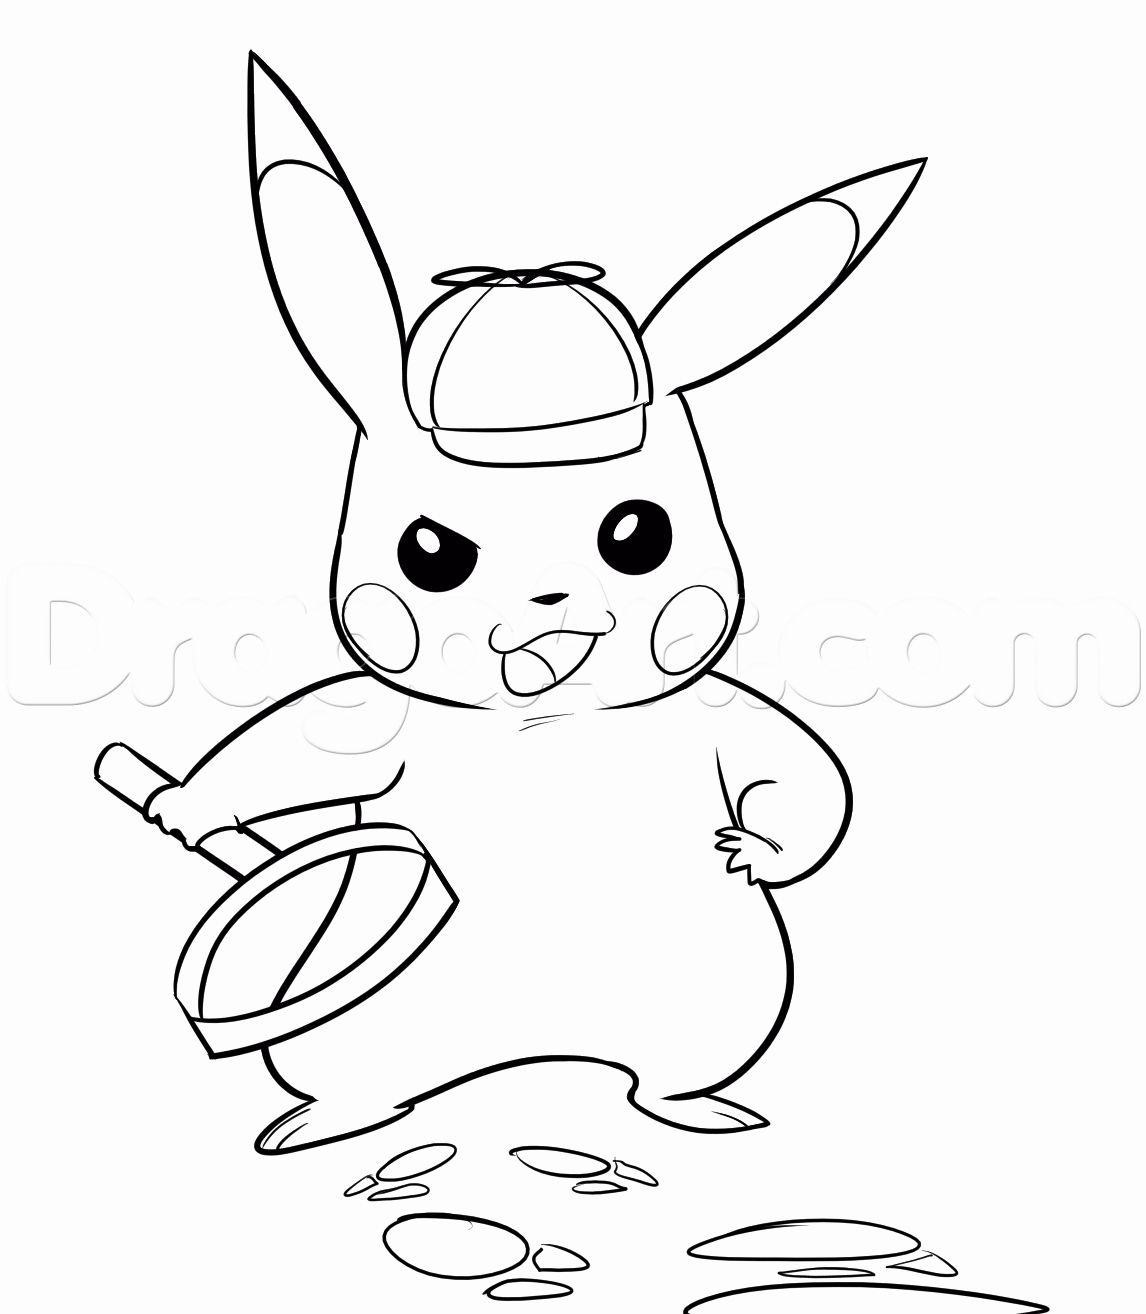 34+ Detective pikachu coloring pages info